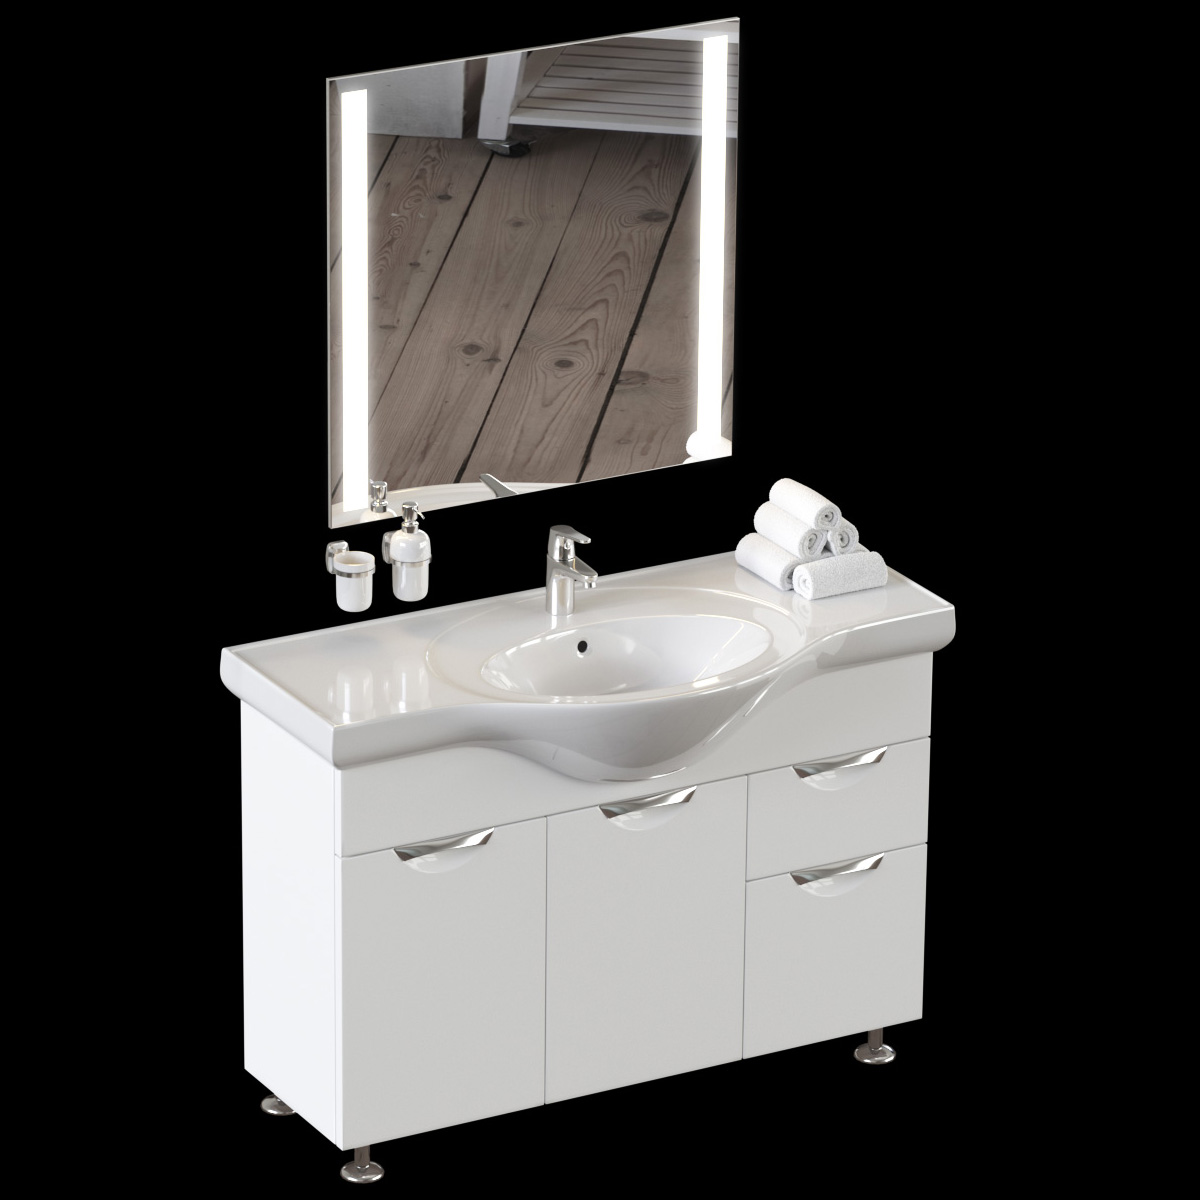 Beau Set Of Bathroom Equipment And Accessories For Bathrooms